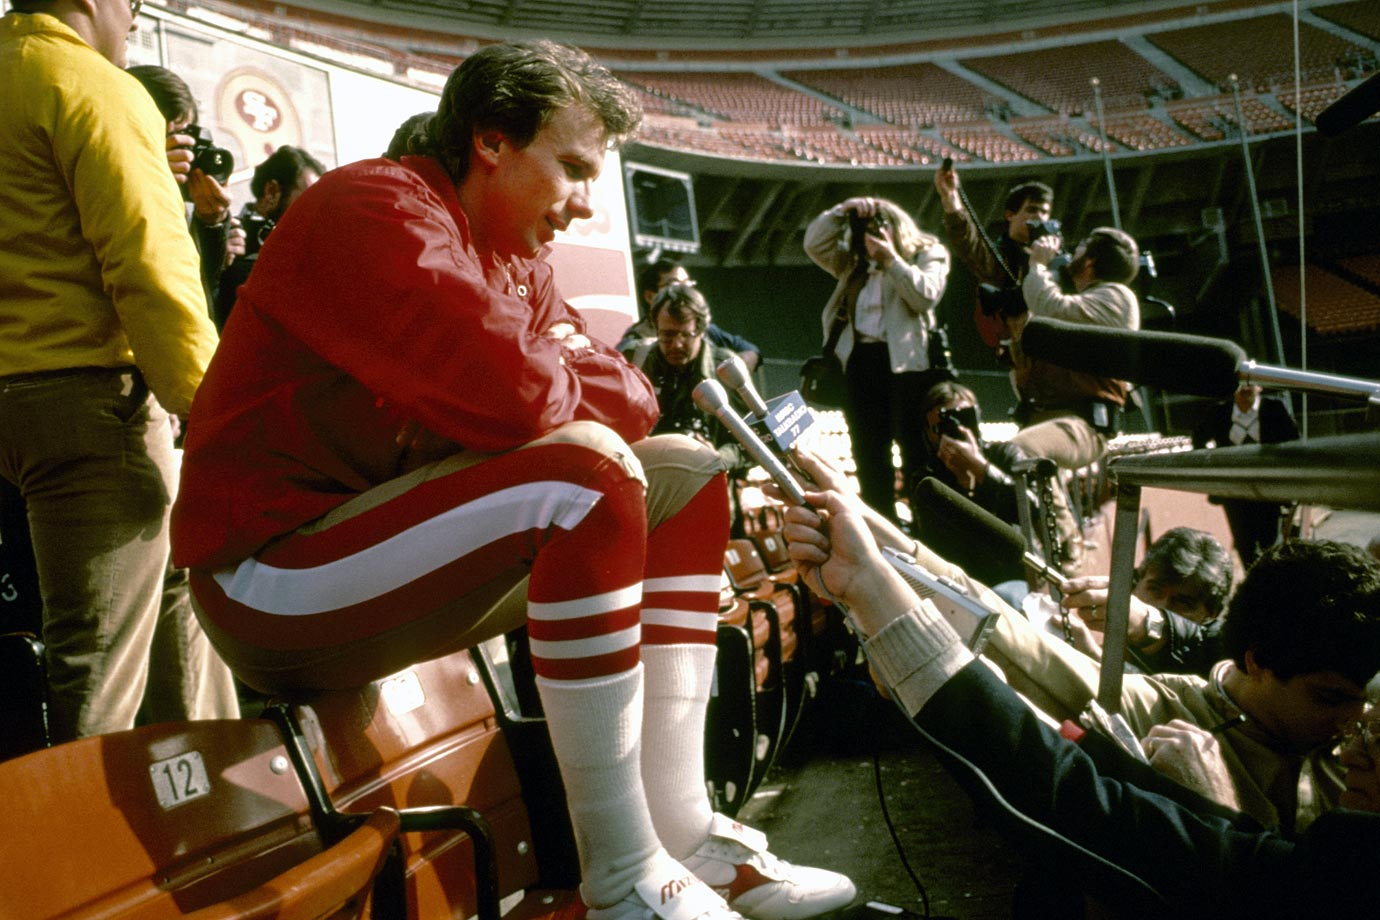 Joe Montana answers questions at Super Bowl XIX Media Day at Stanford Stadium. The 49ers defeated the Dolphins 38-16, led by Montana's 331 passing yards and three touchdowns.